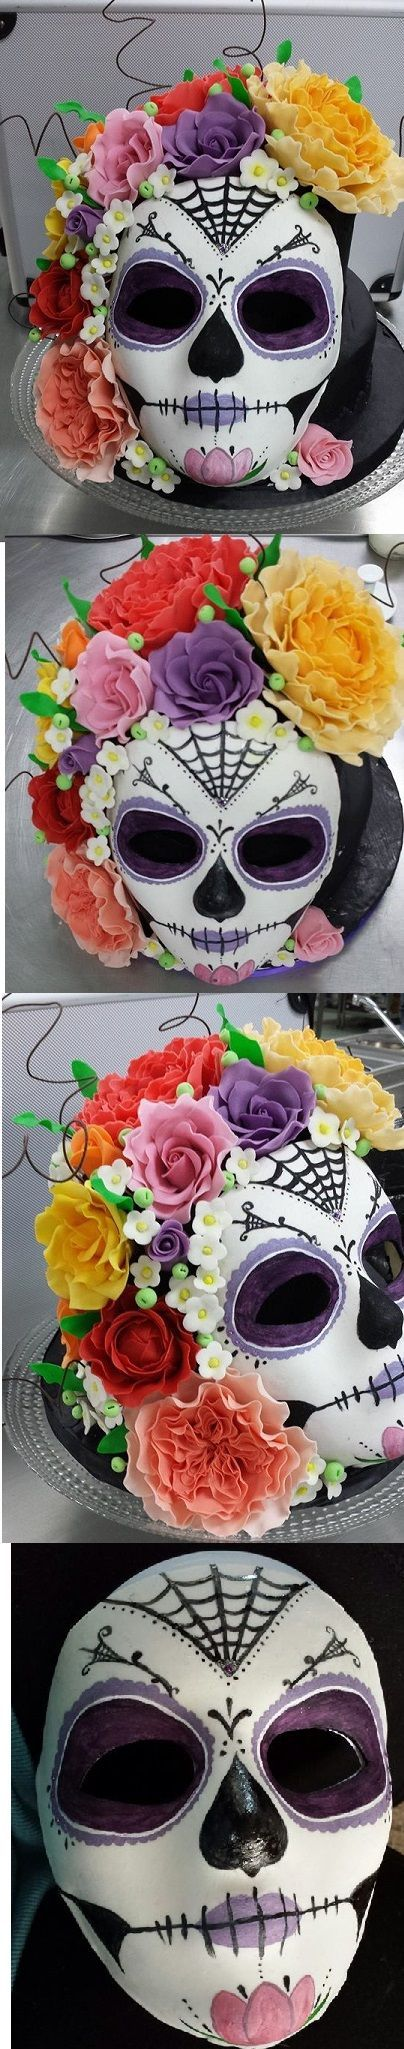 Sugar Skull I'm so happy how this turned out, I really wanted to make a cake that was out of the norm for my show piece at school, I'm about to recreate it for a upcoming comp. (fingers crossed):